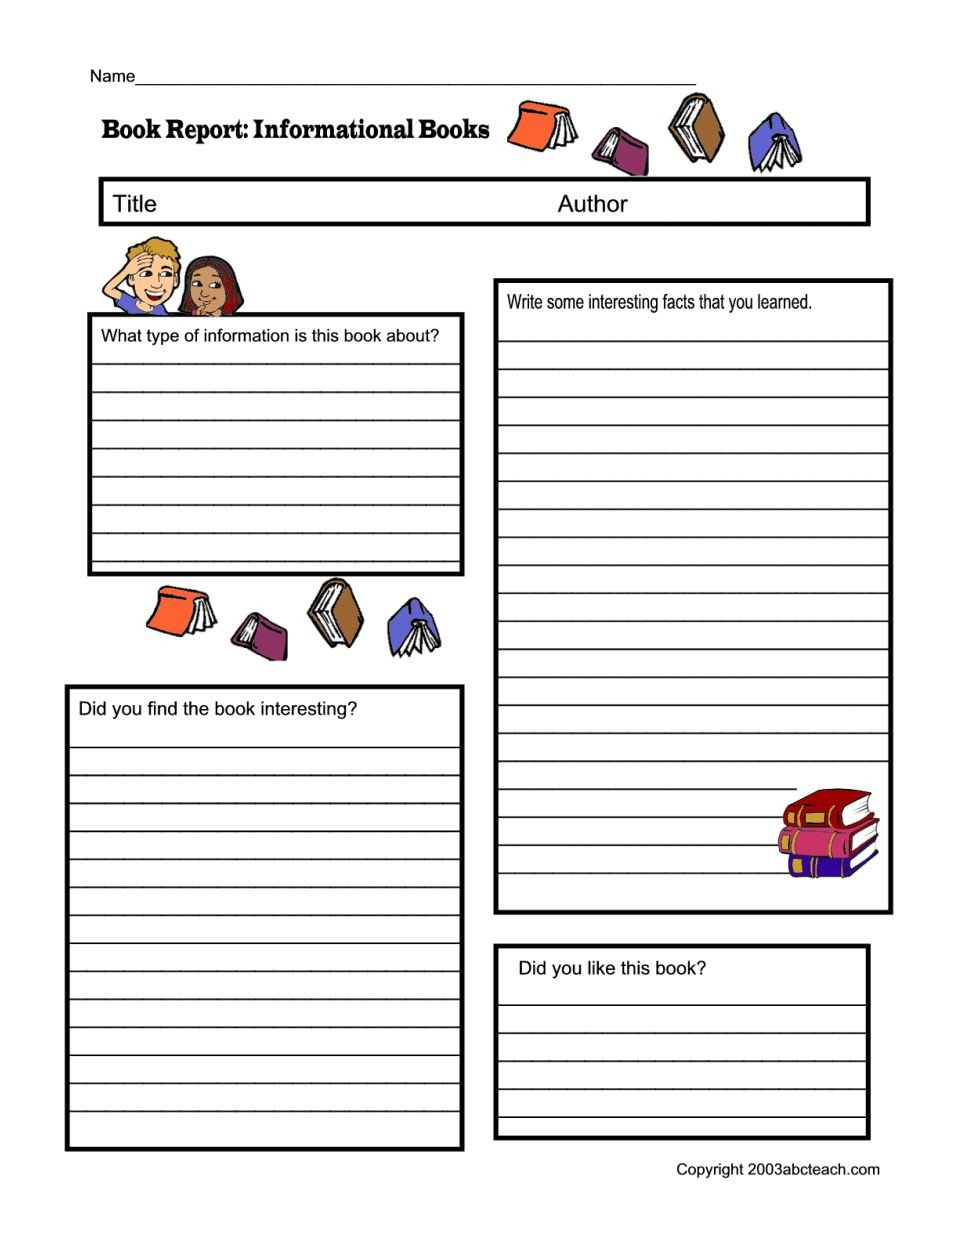 Fiction and Nonfiction Worksheets Pdf the Glamorous Non Fiction Book Report form Pdf